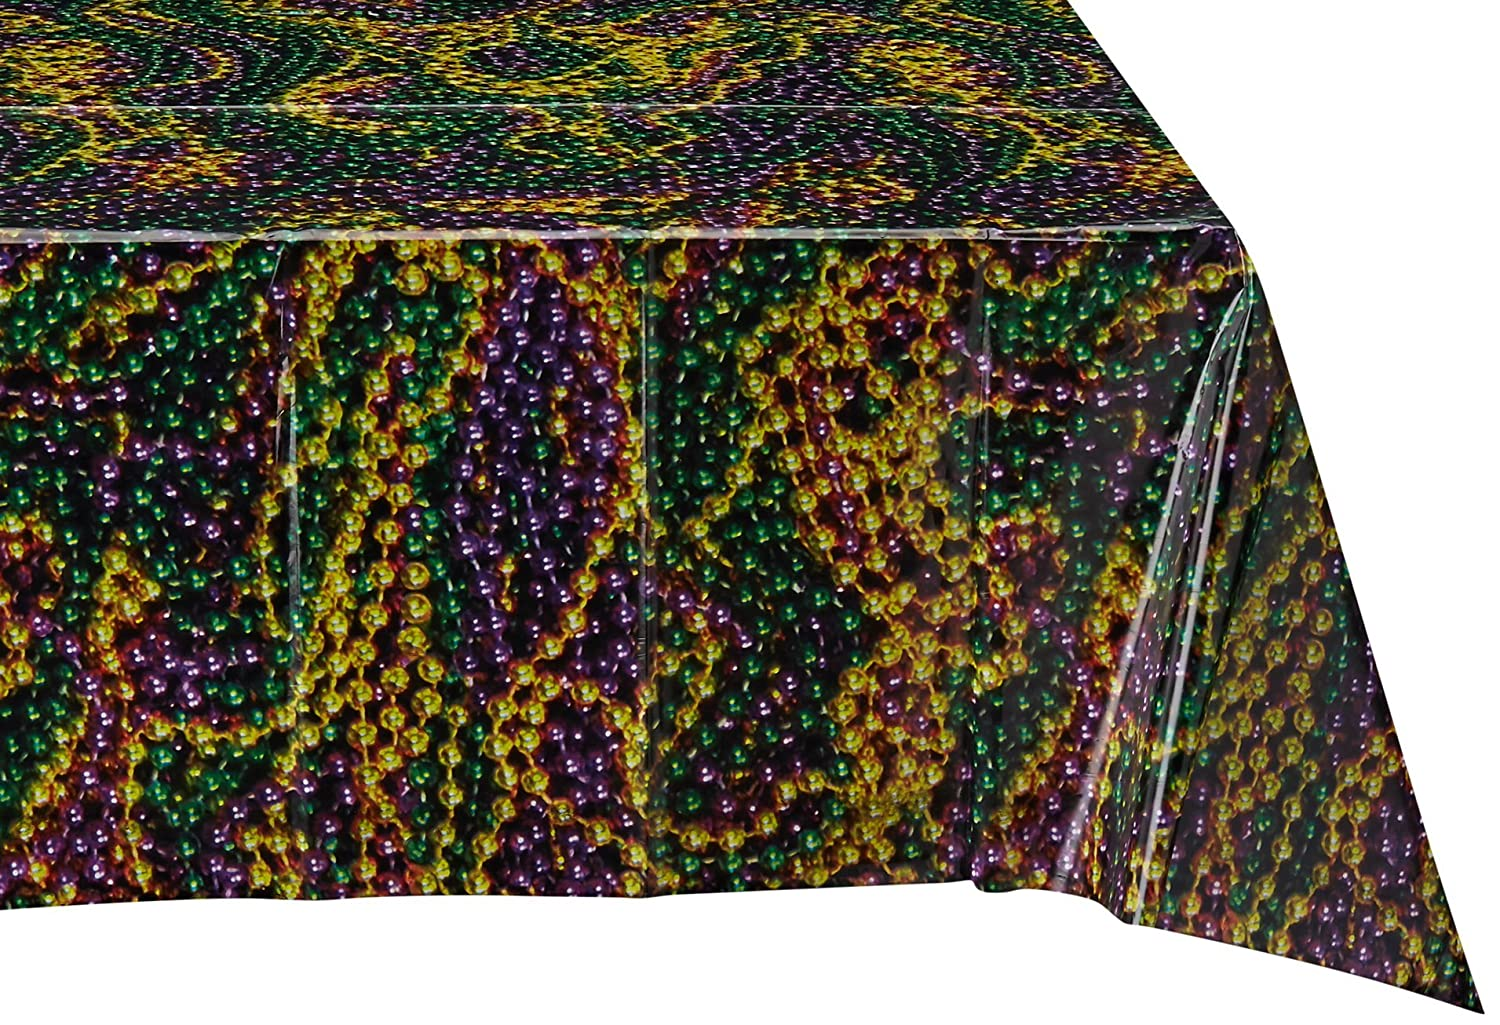 54-Inch by 108-Inch The Beistle Company Beistle 57938 Mardi Gras Beads Tablecover